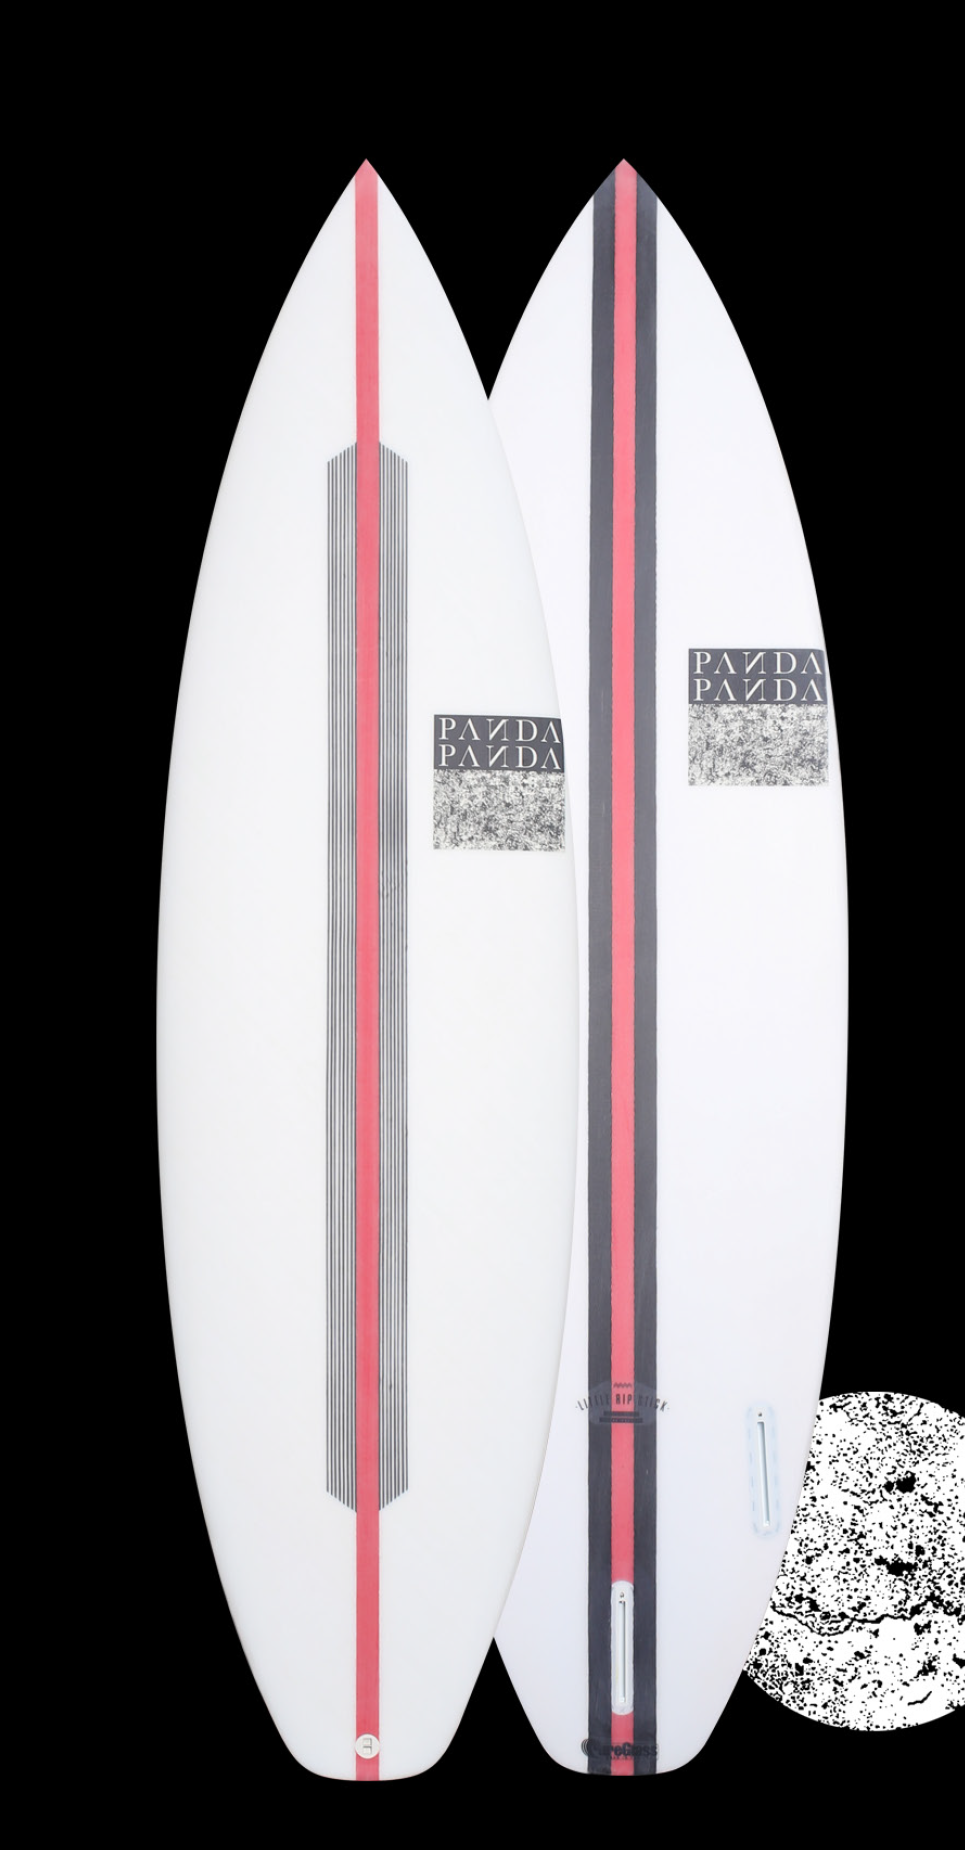 FVK The FVK has an EPS core with a high density PU stringer lami- nated in X and S cloth for superior flex and compression strength using carbon panels to control and change the flex pattern for a superior board with flex and drive where you want it and that extra bit of spark. All Panda models are available in FVK Tech.